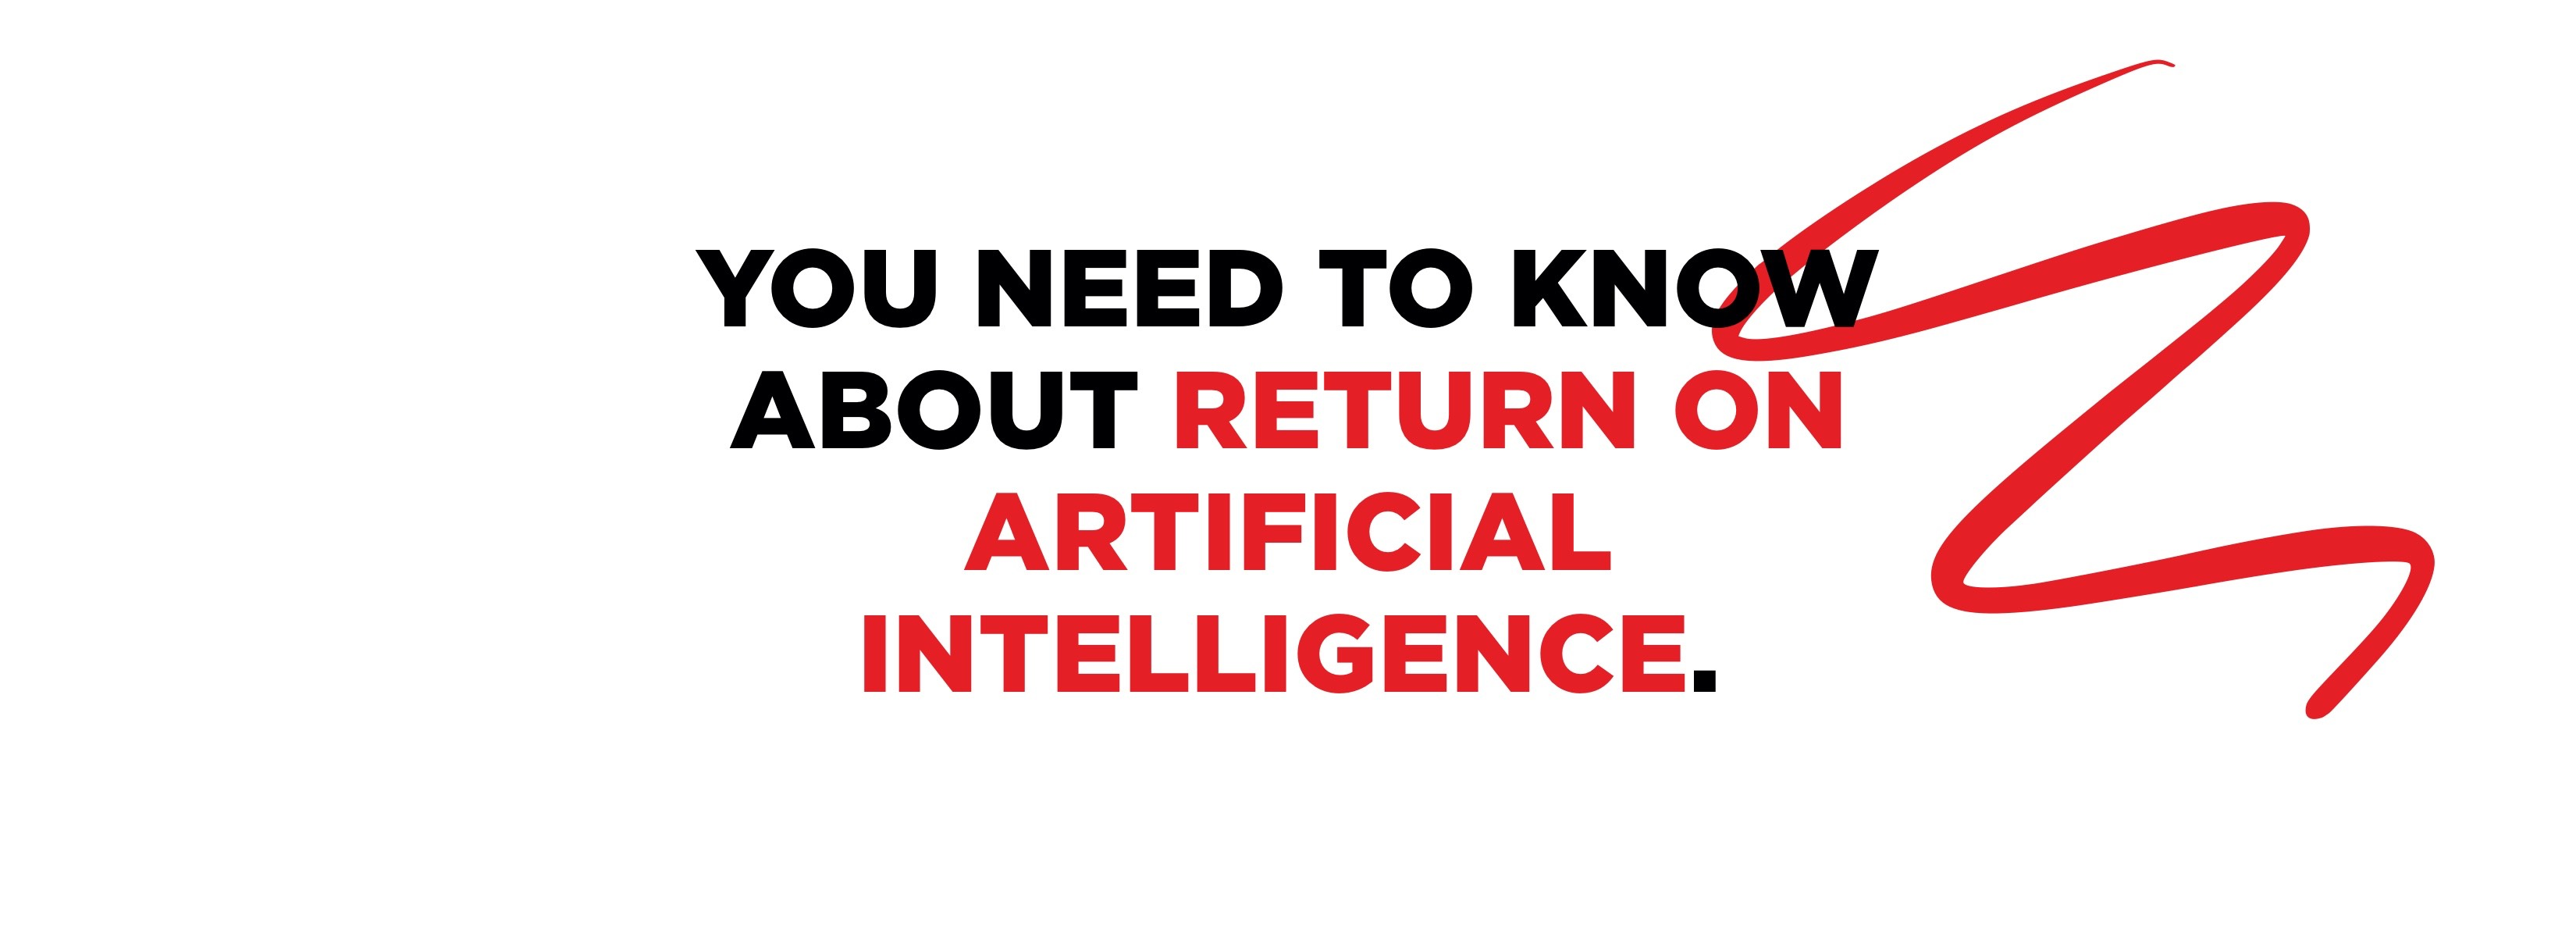 AI's ROI grows with time. You just don't realize that yet. Let's call it ROA.